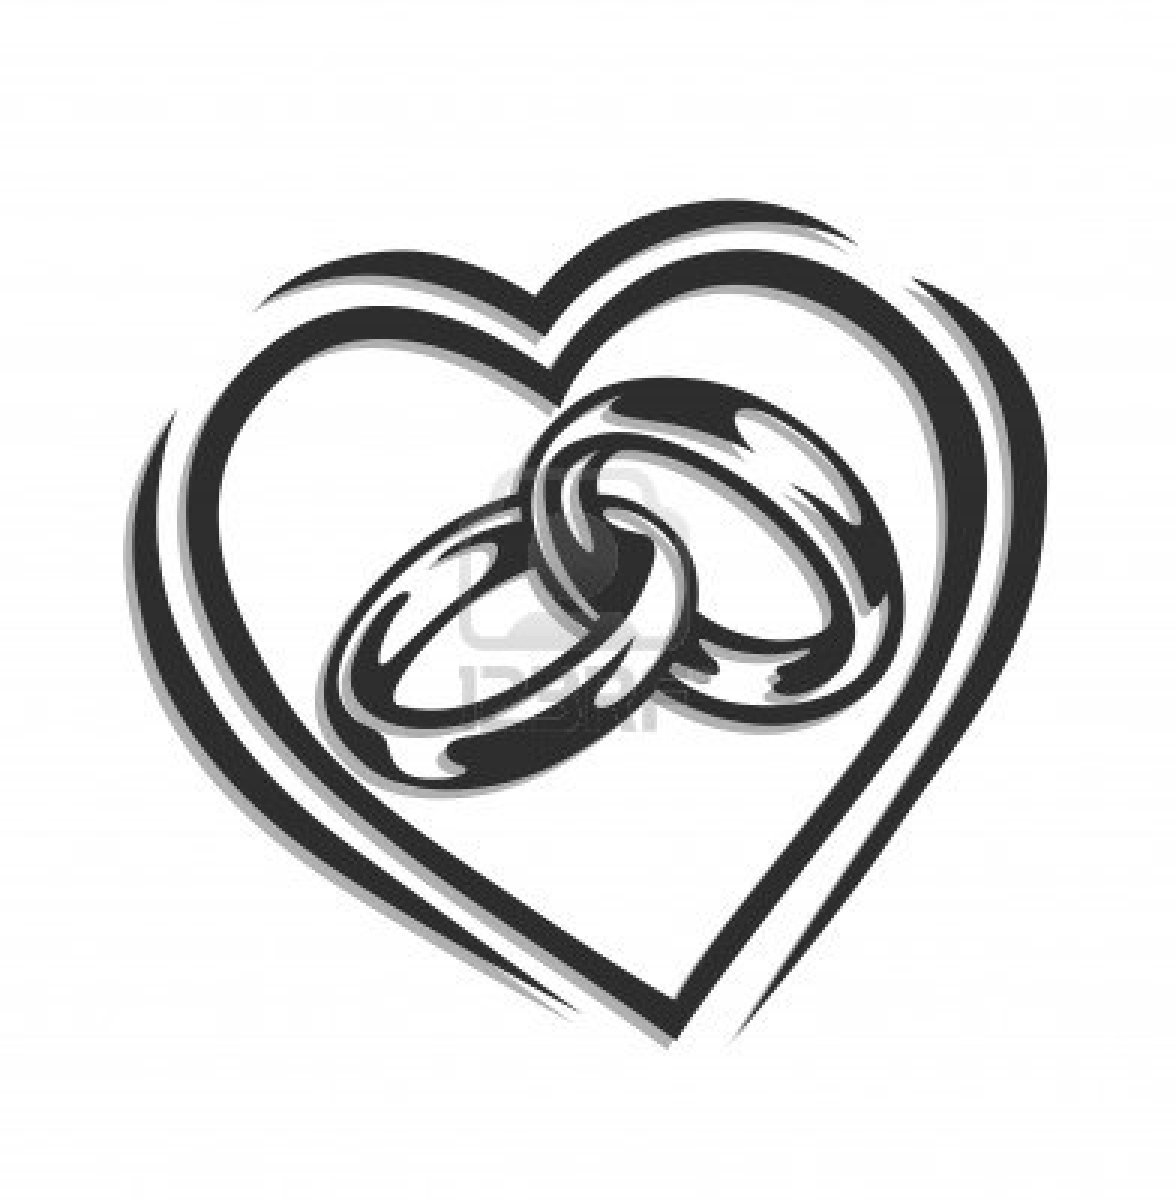 Silver clipart interlocking ring Images wedding%20ring%20clipart Heart Wedding Clipart